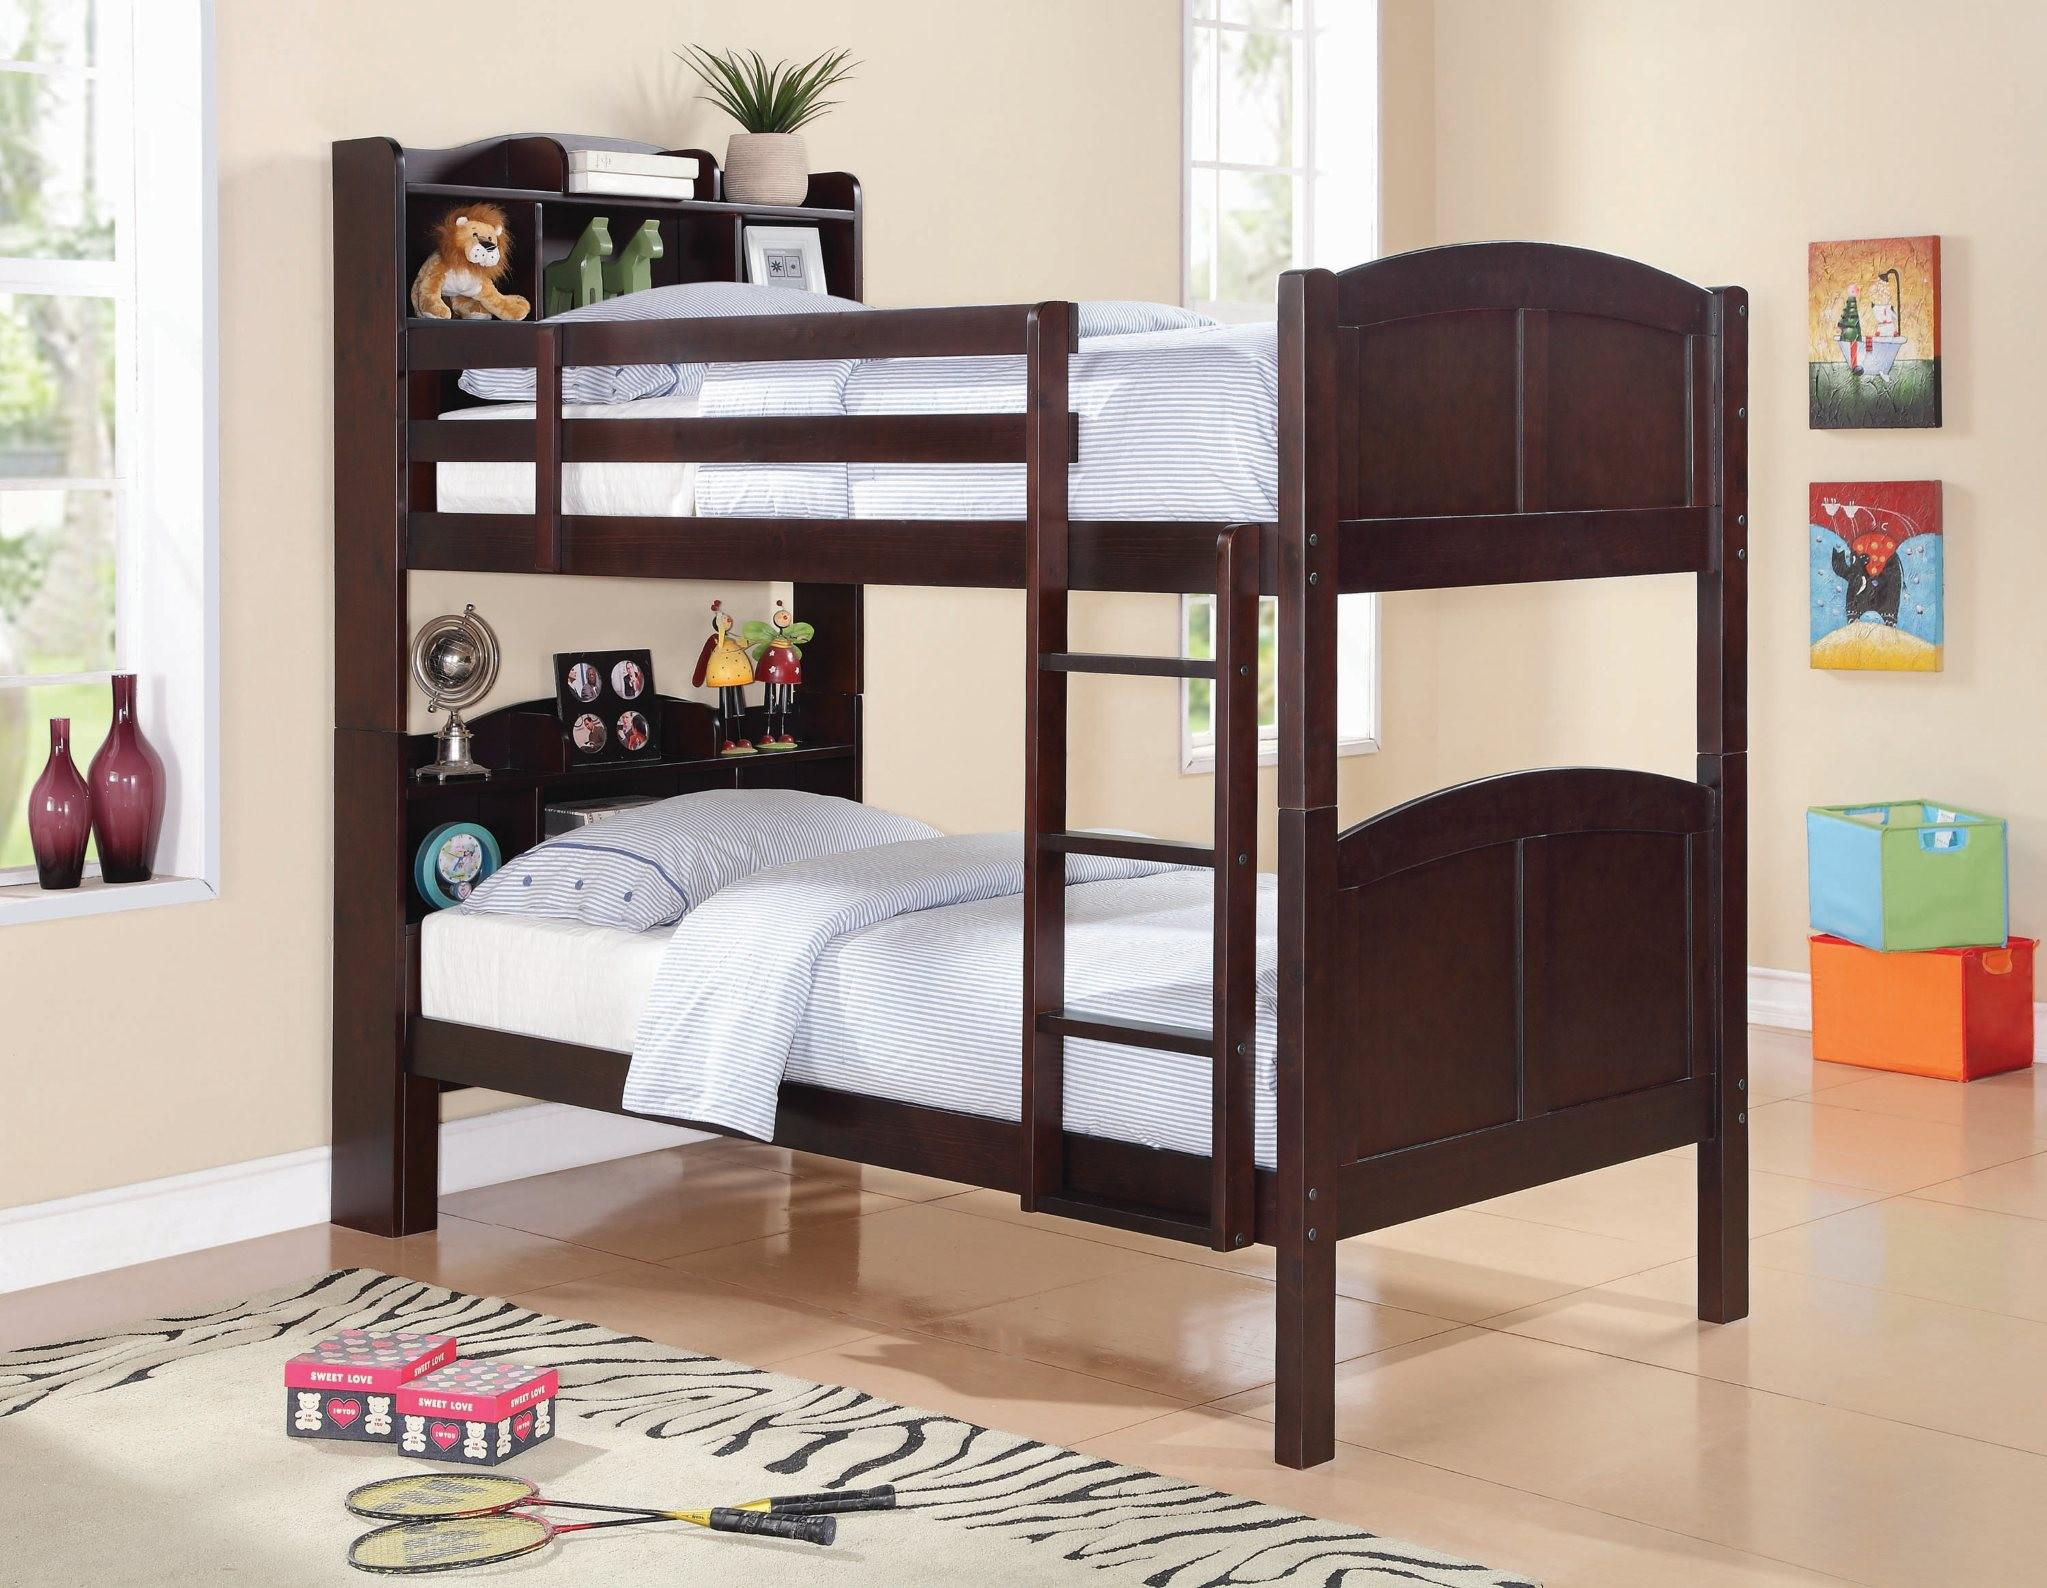 classic with kingsville calallen twin products daybed storage furniture new bookshelf corpus bookcase christi size logan by wilcox item texas bed headboard